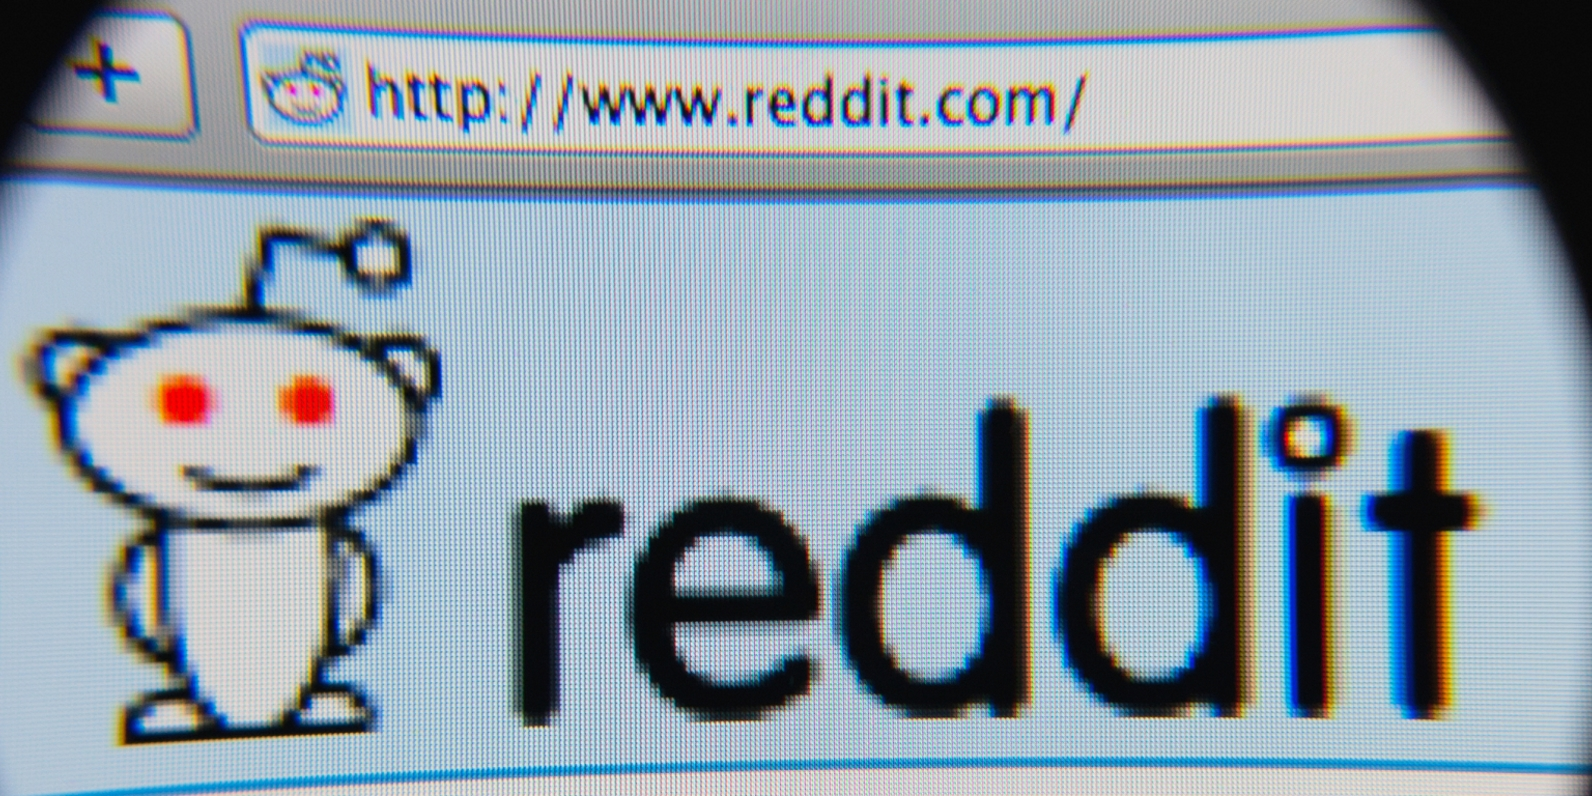 Forget Imgur: Reddit now lets you upload pics and GIFs natively